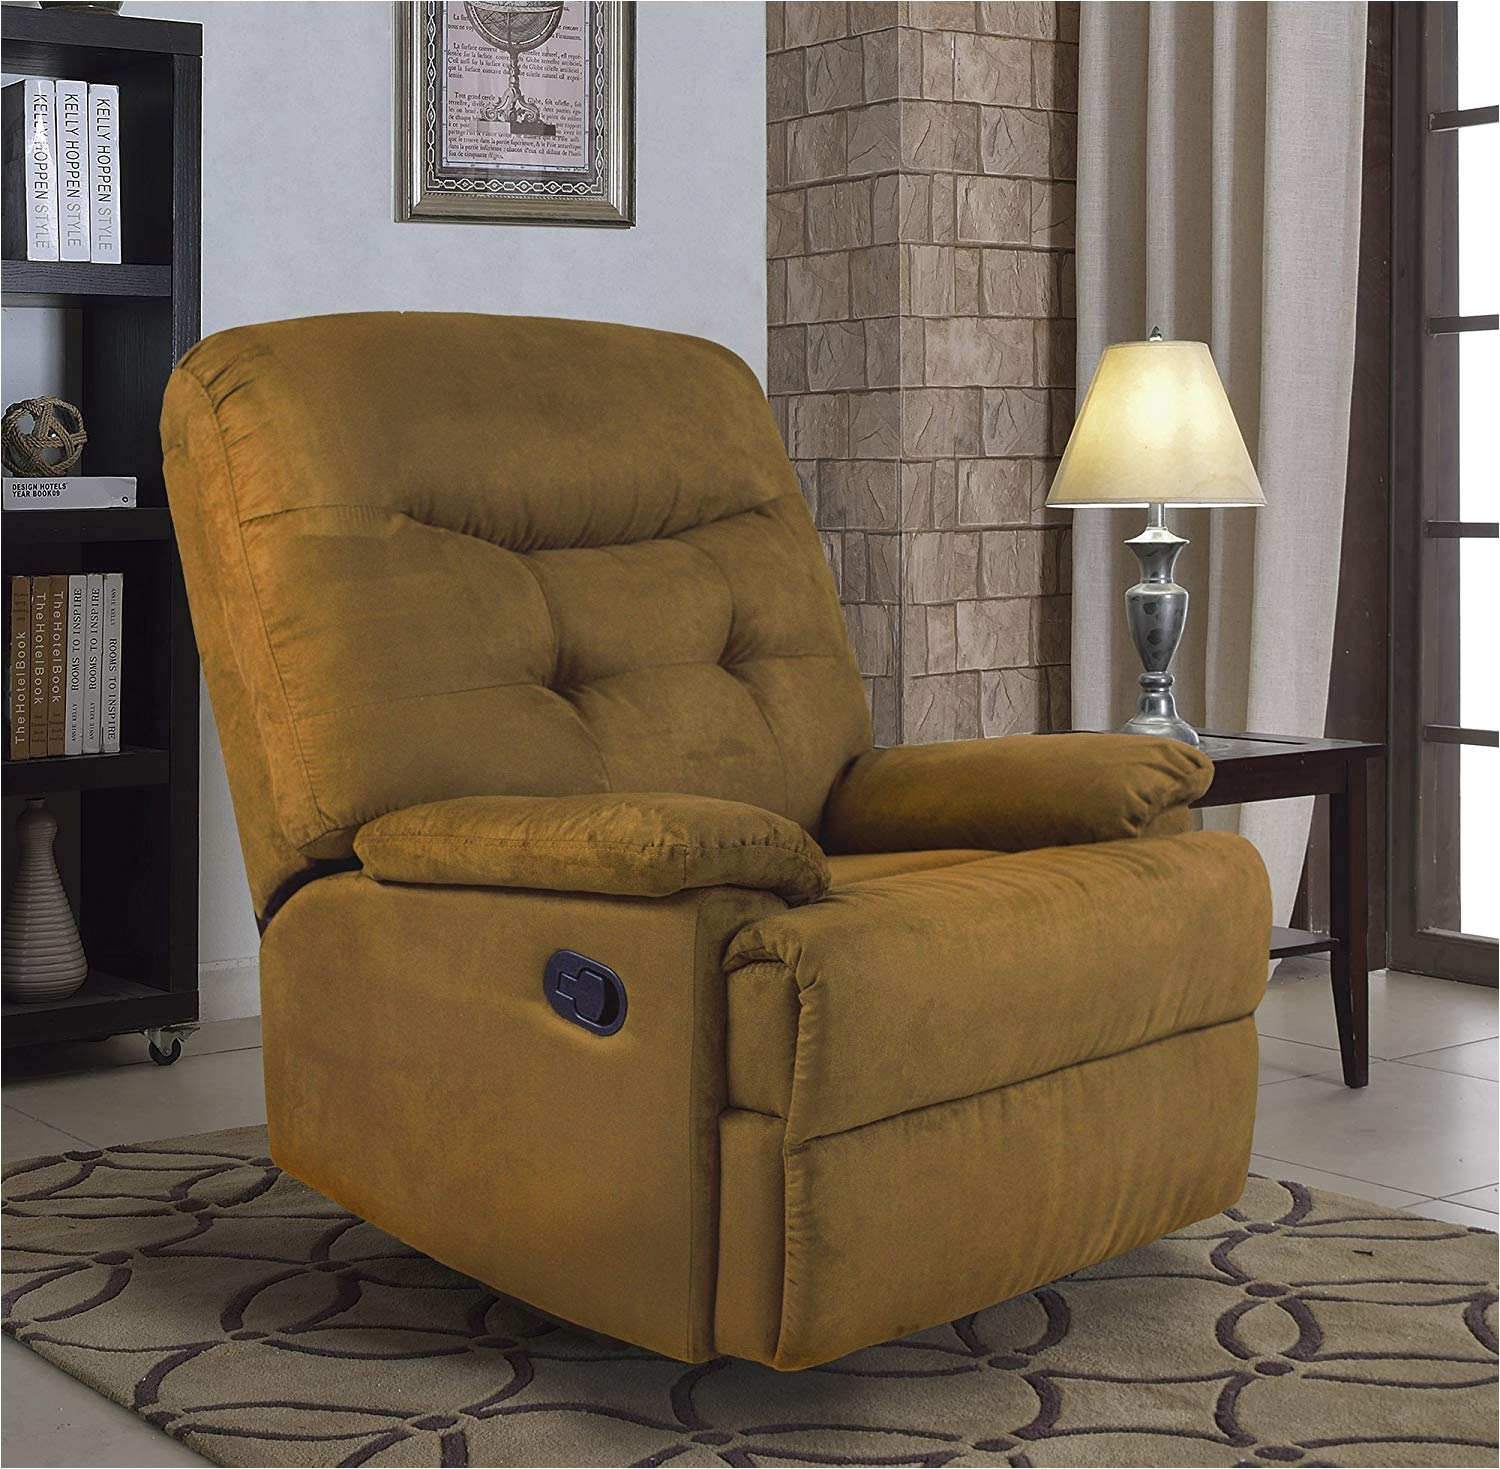 Free Lift Chairs for the Elderly Amazon Com Ocean Bridge Furniture Collection Big Jack